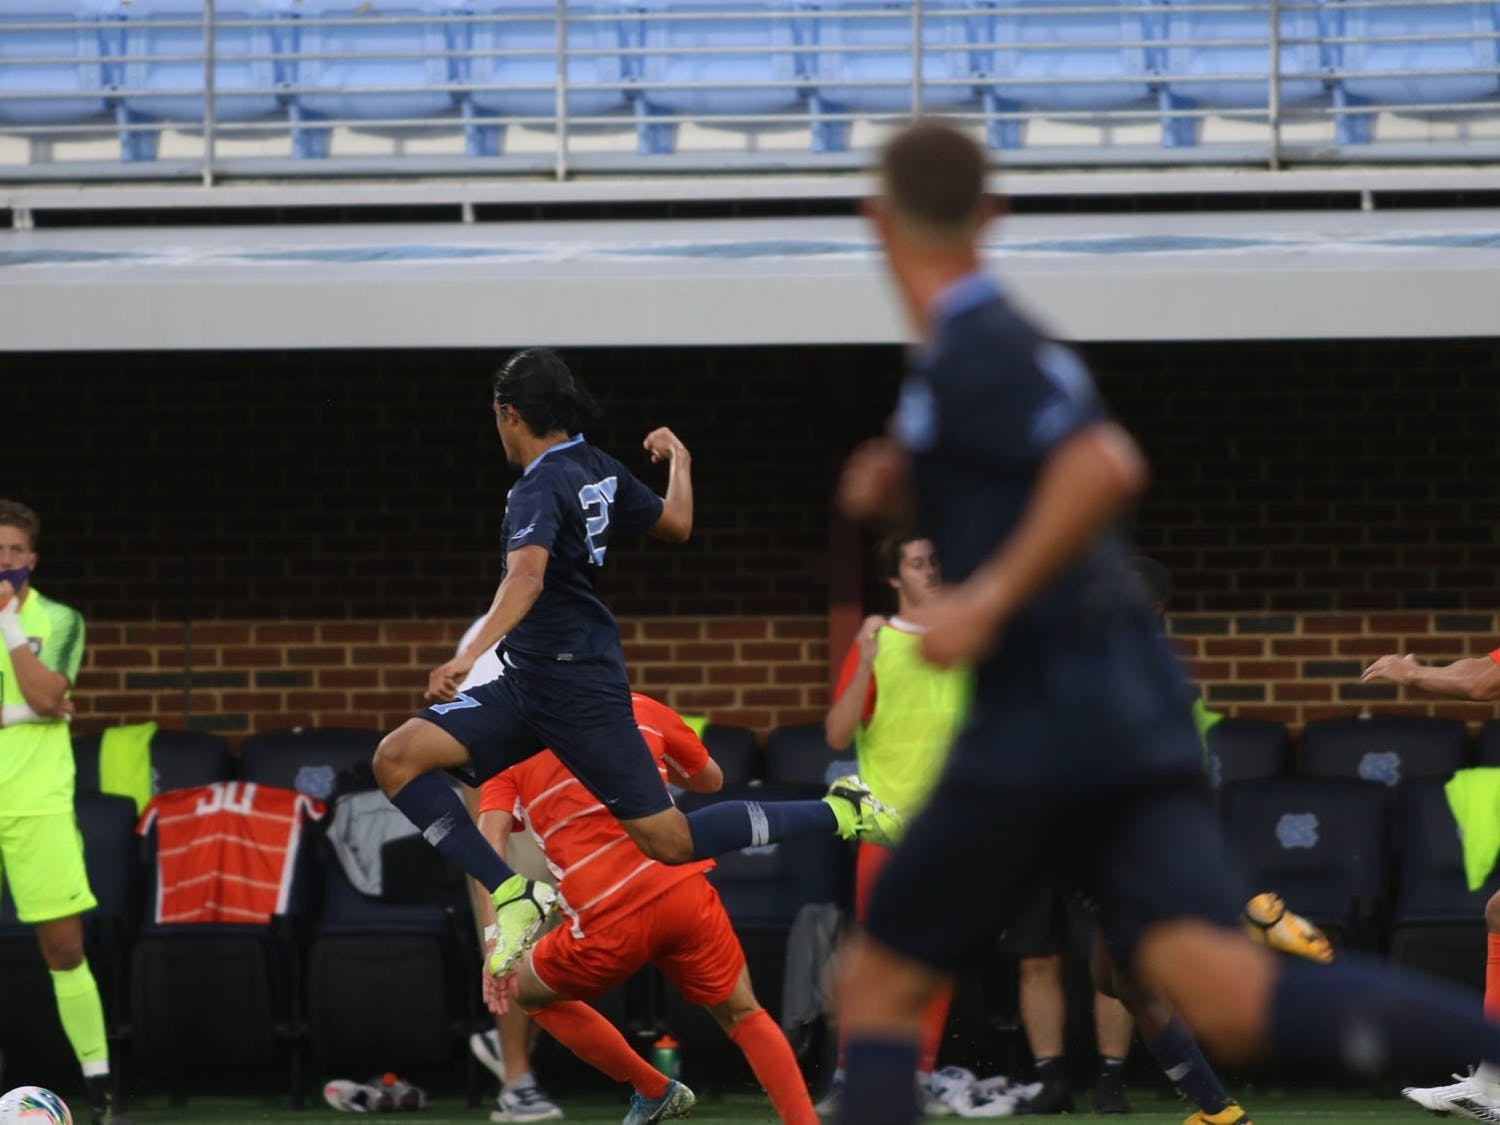 UNC senior forward Lucas del Rosario (7) attempts to kick the ball during a a game against Clemson at Dorrance Field on Friday, Oct. 9, 2020. UNC won 1-0.